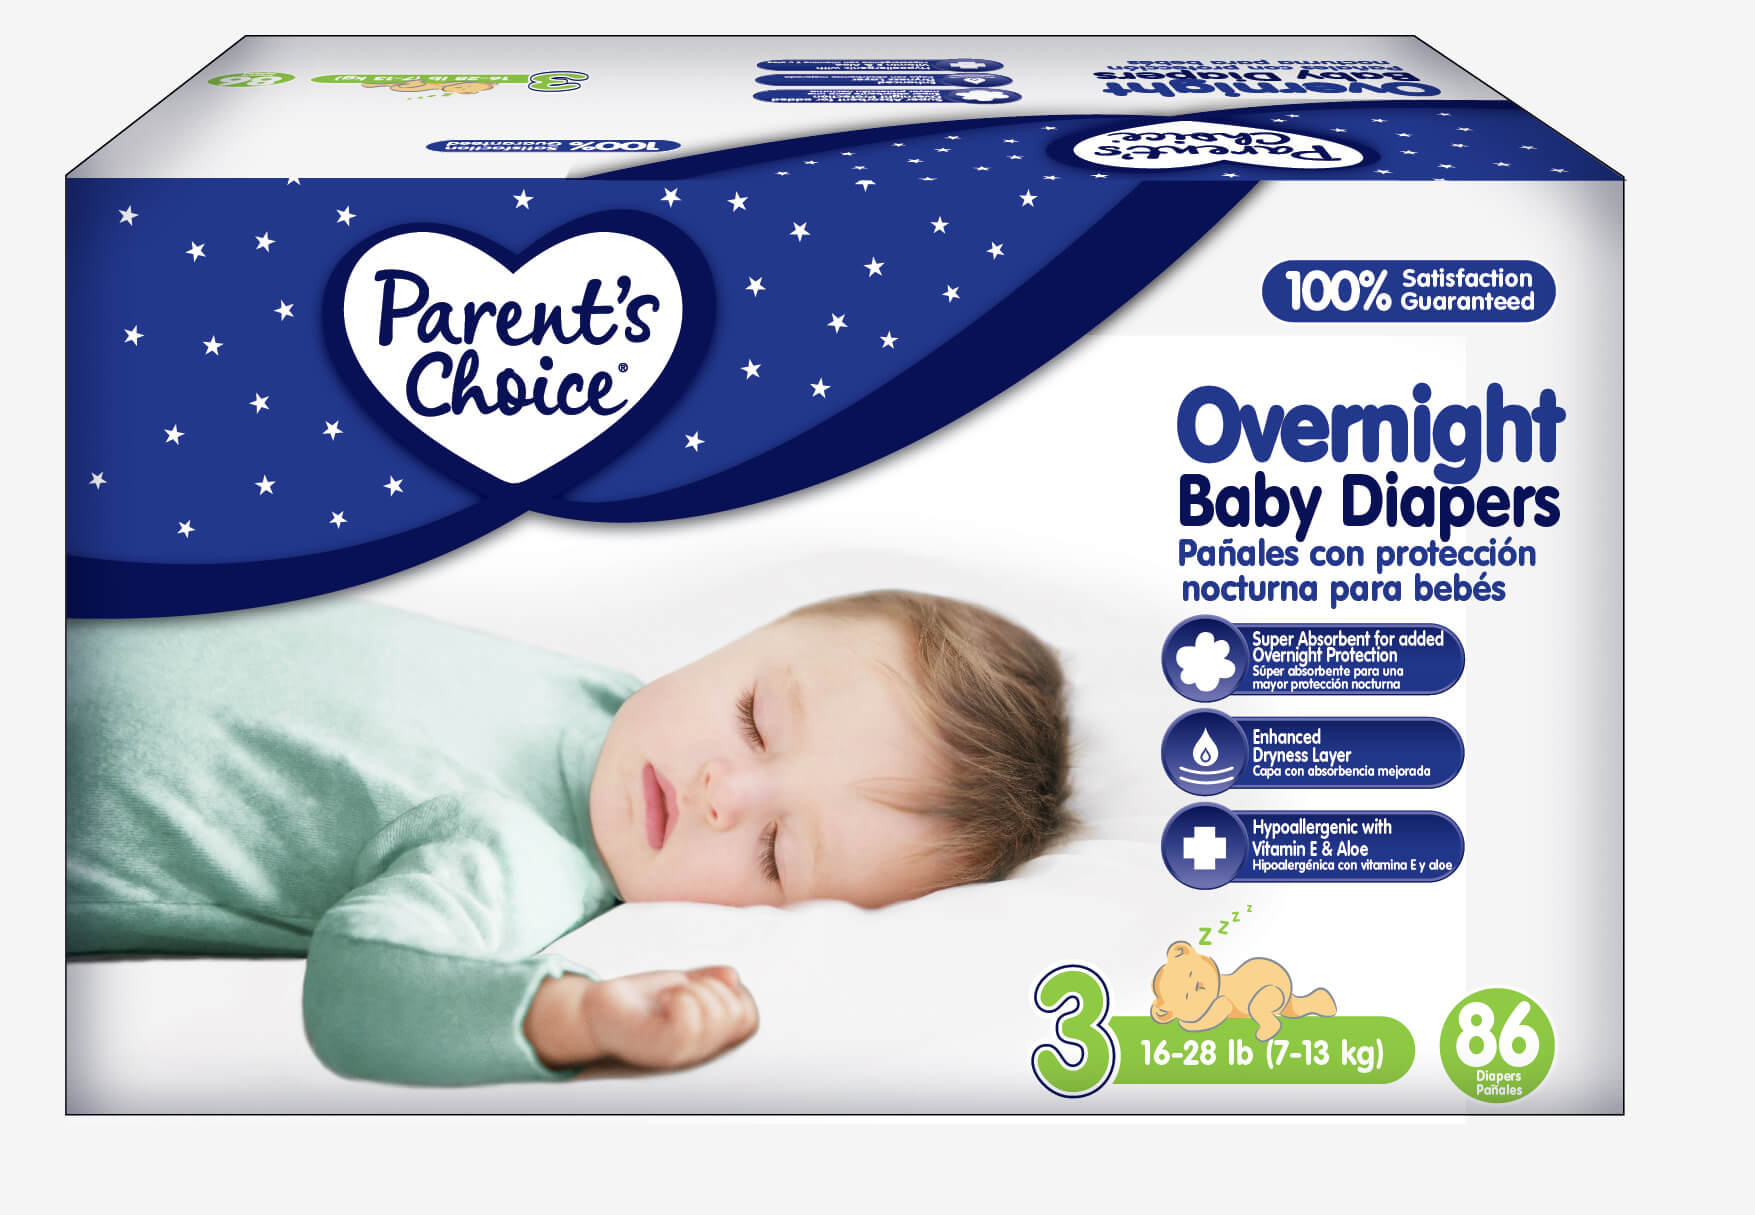 Baby Diaper Package Product Packaging Contest